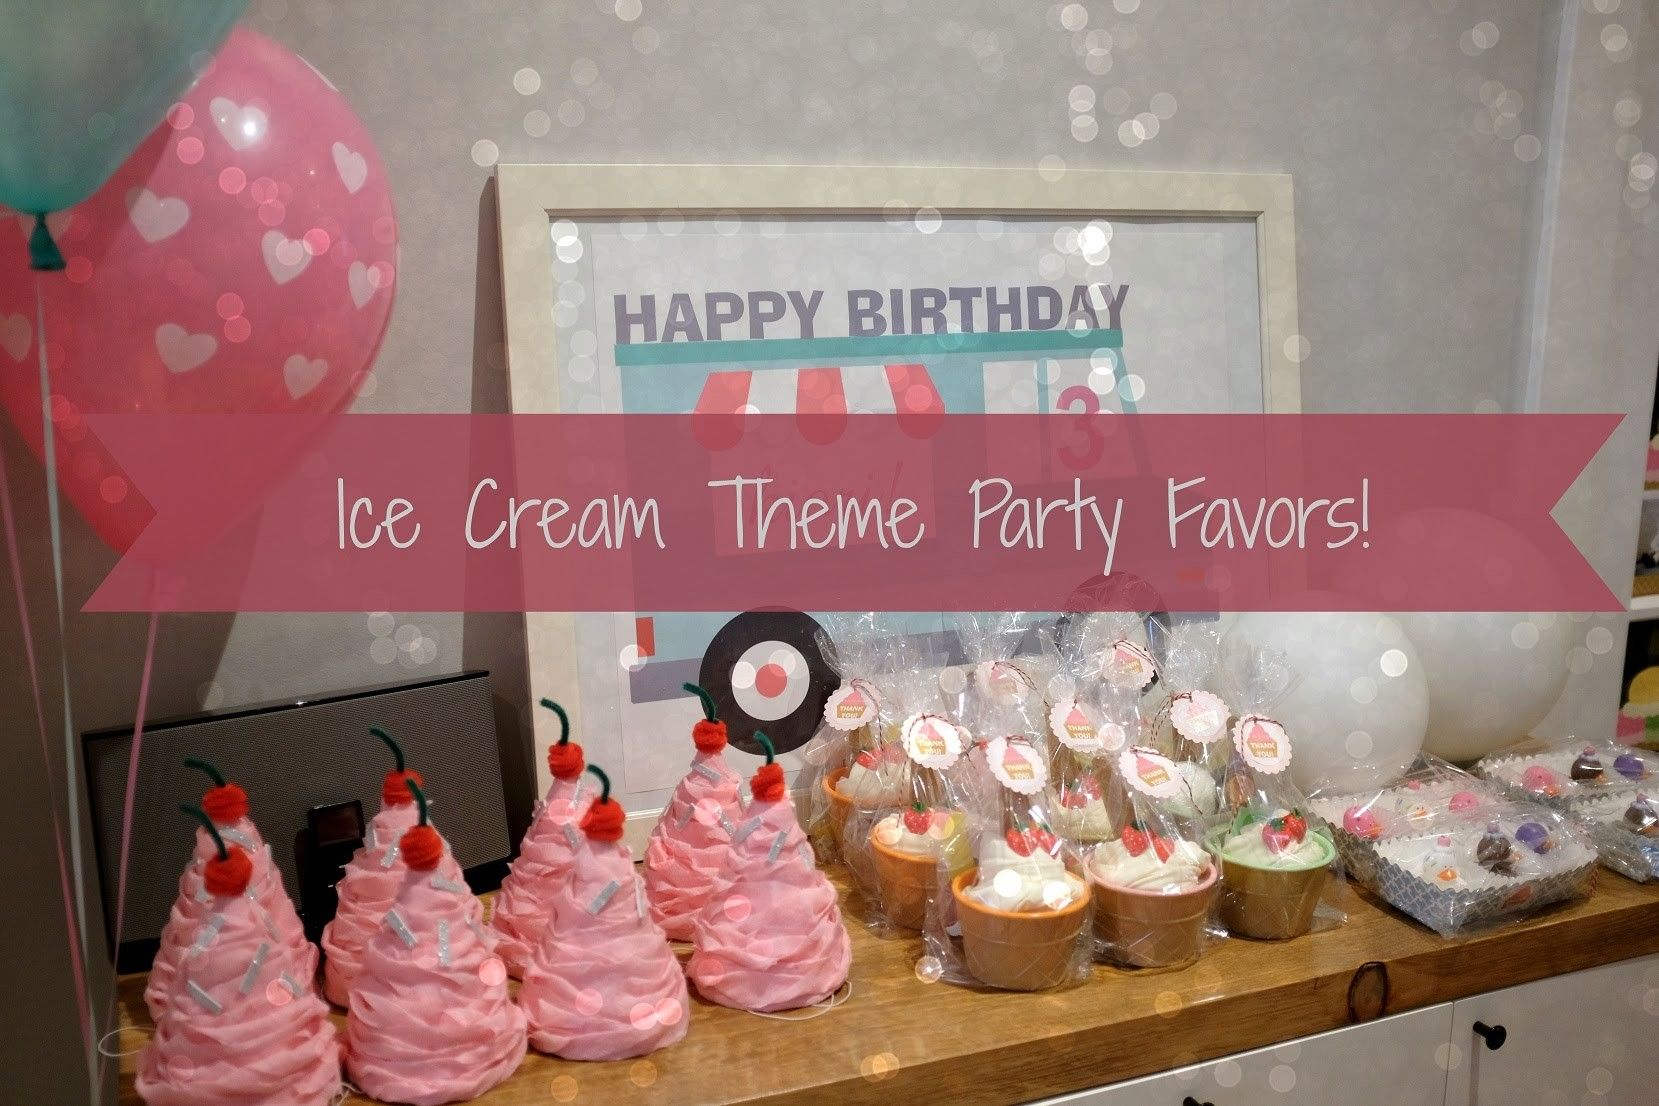 Ice Cream Theme Party Favors Ideas & Tutorial